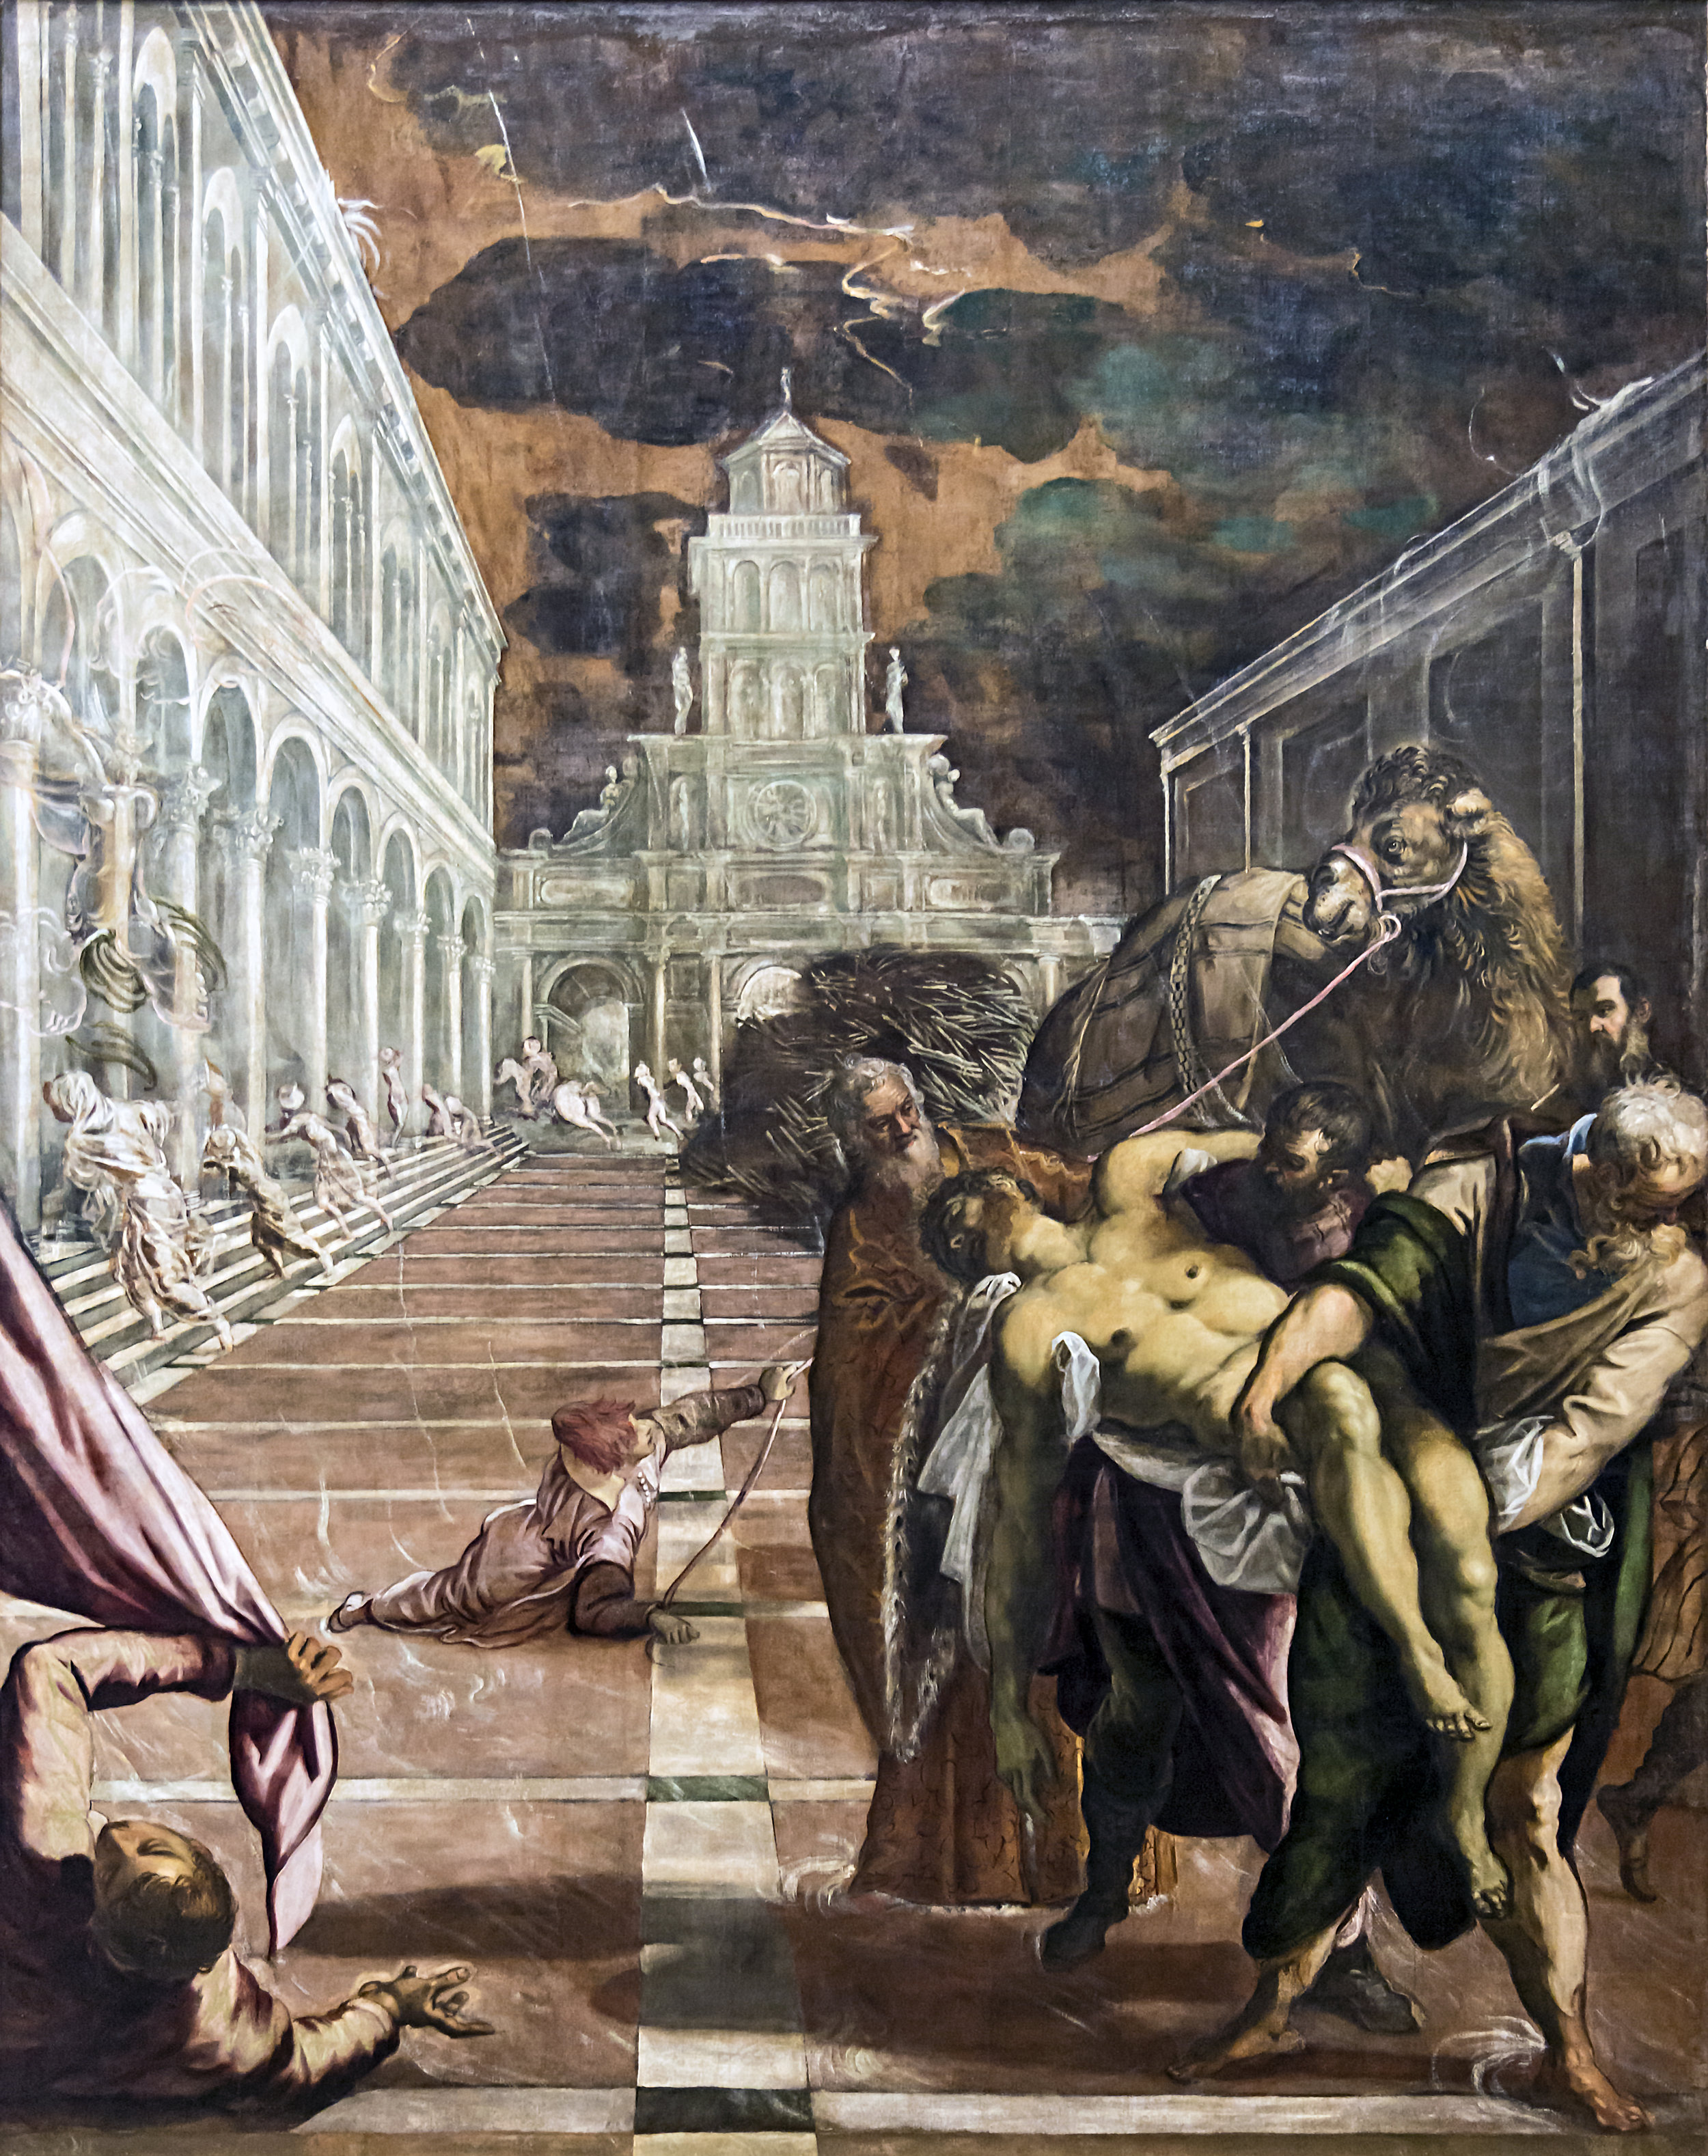 St Mark's Body Brought to Venice  by TINTERETTO    Date 1562 and 1566,  Gallerie dell'Accademia  Collection